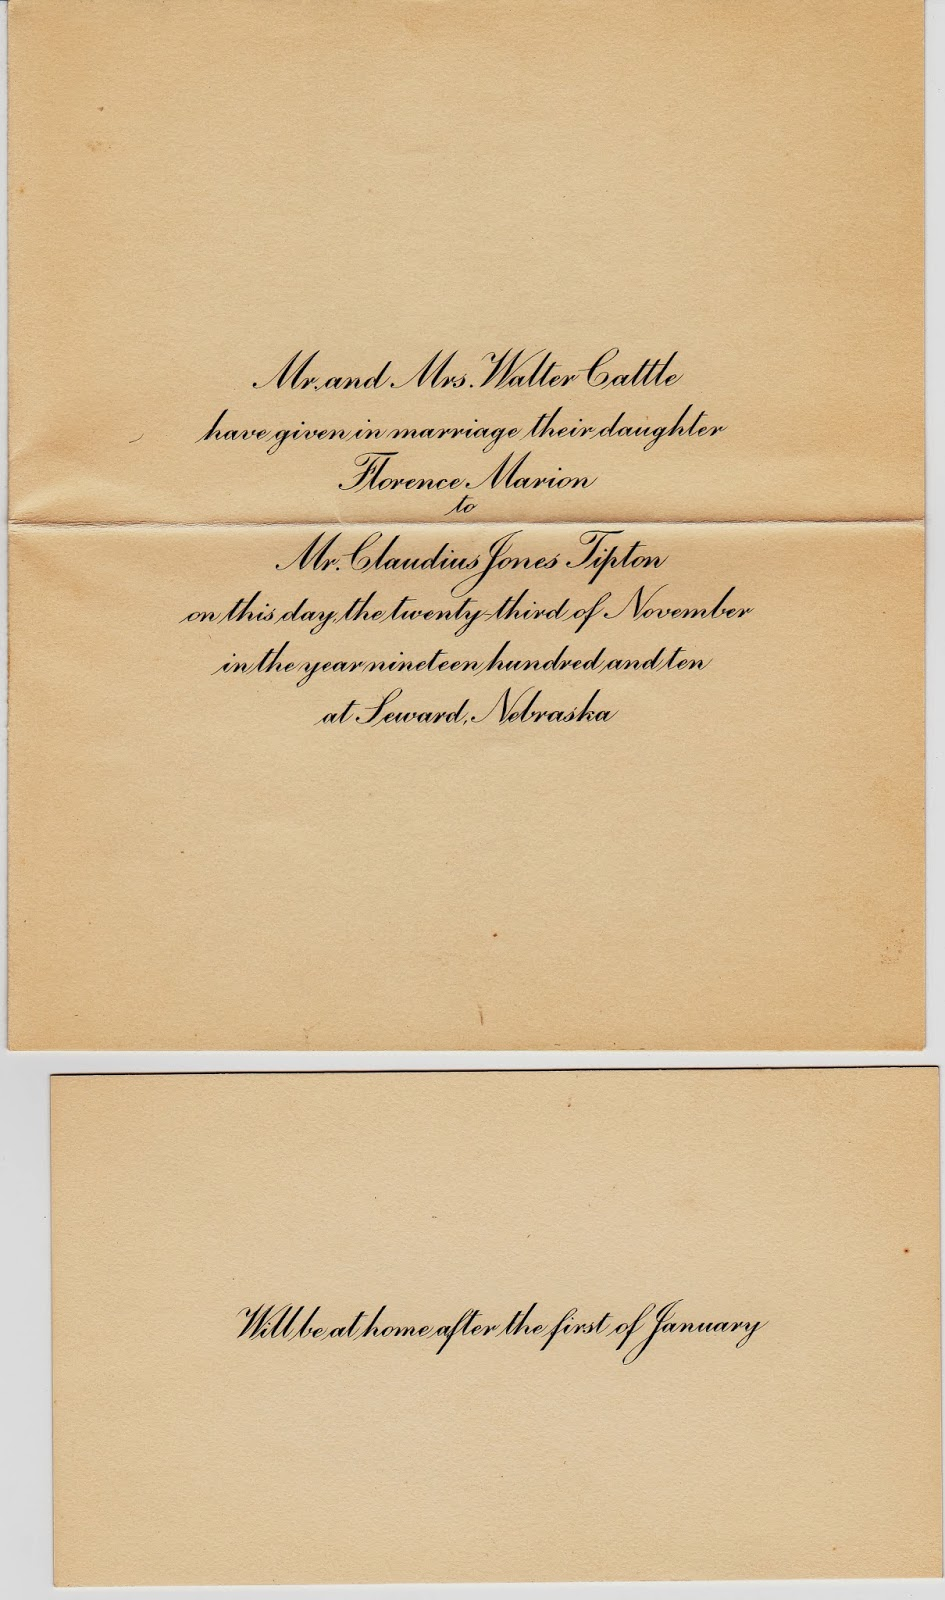 Finding and Preserving Your History A 1910 Wedding Invitation Adds